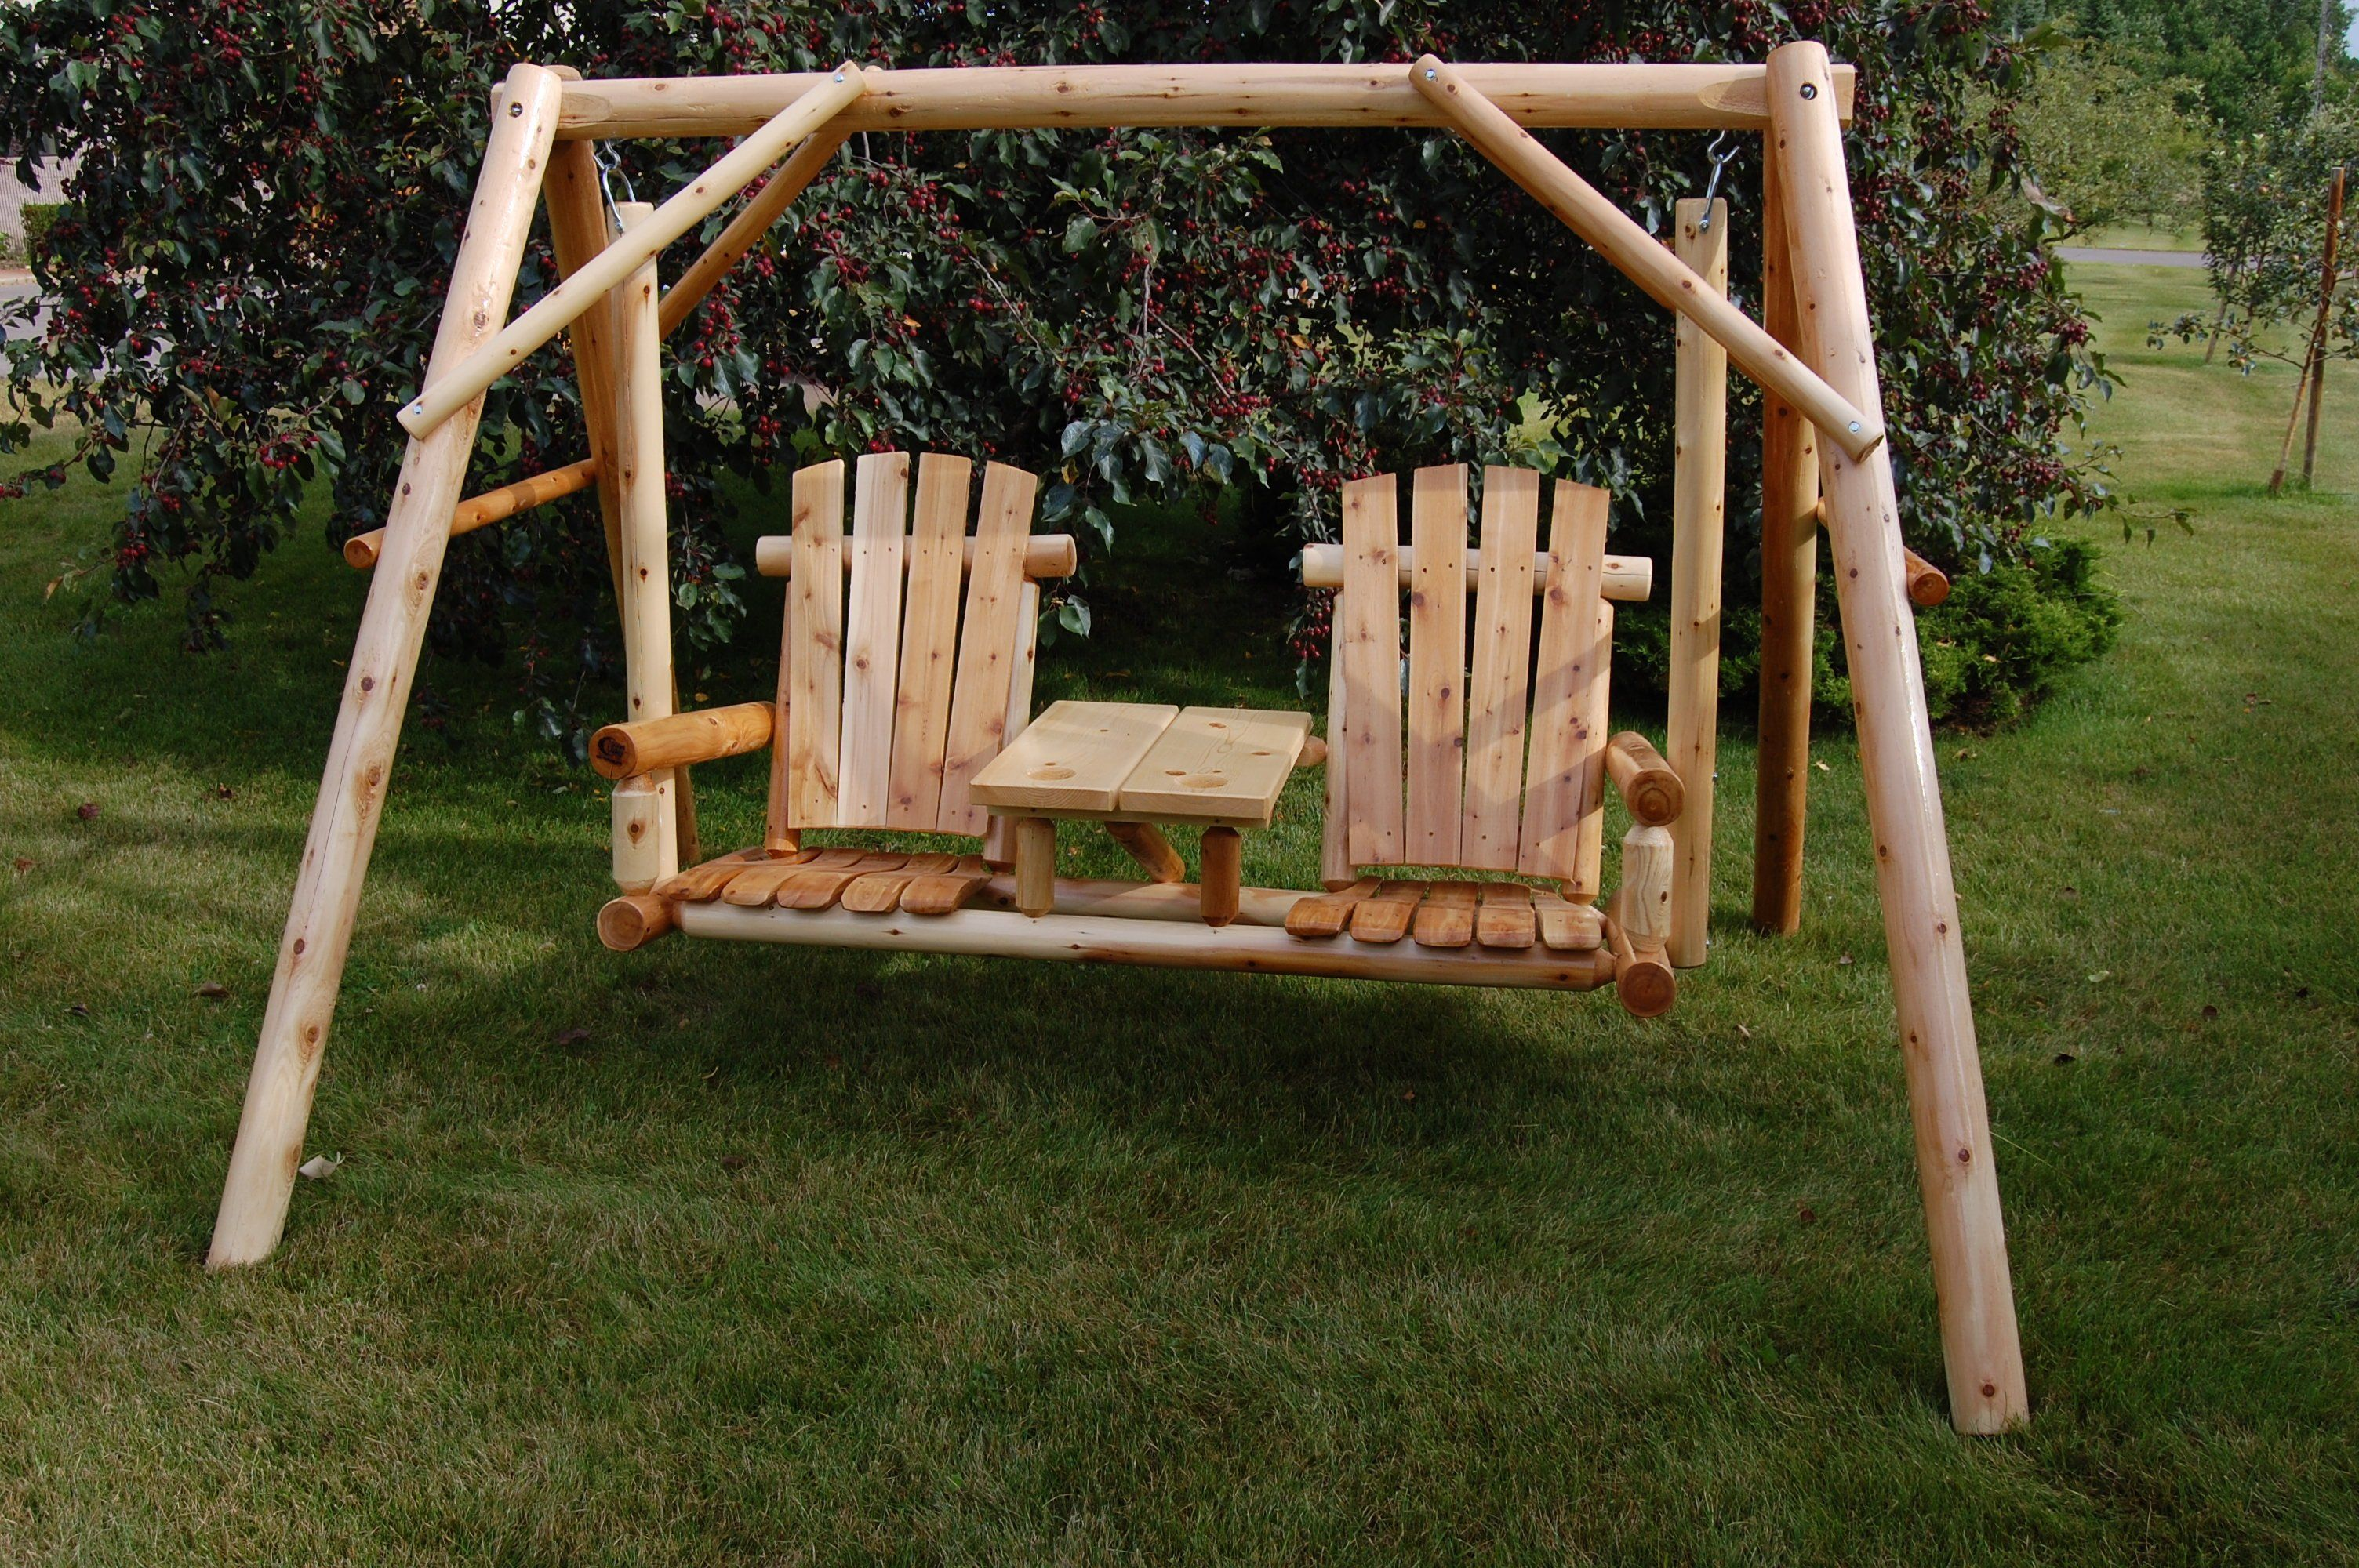 Moon valley rustic teteatete swing canopy sold separately